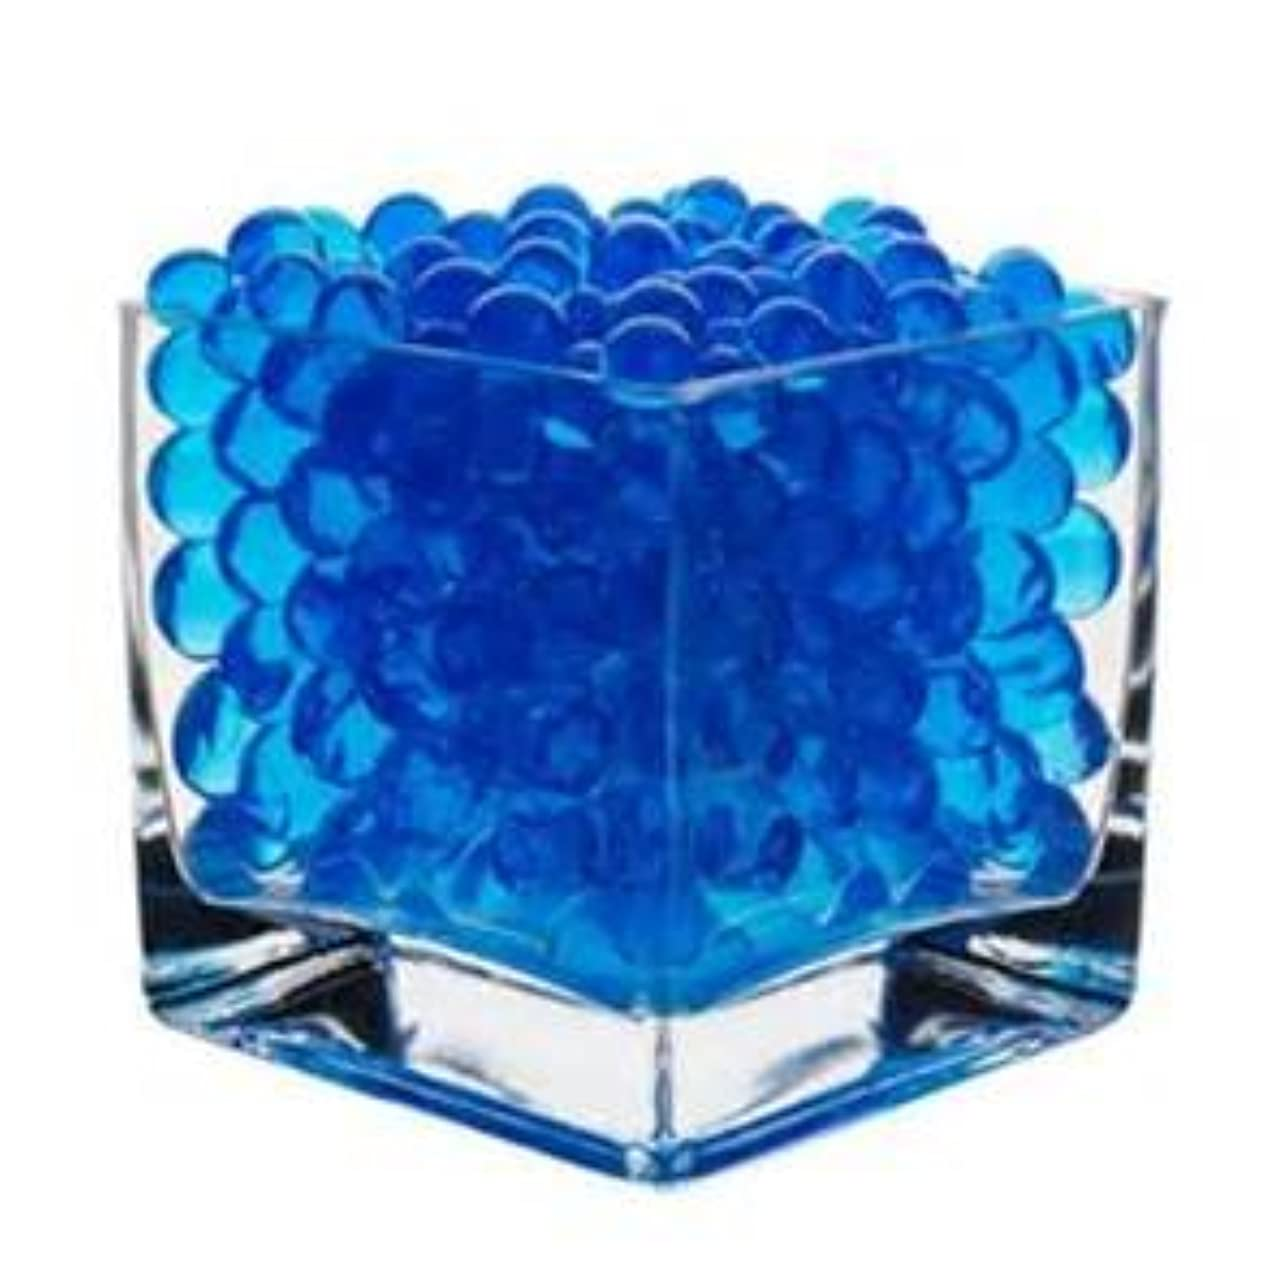 JellyBeadZ Brand - 8oz -Almost 15,000 Water Bead Gel - Heat Sealed Bag- Water Pearls Gel Beads- Wedding & Event Centerpieces - Blue